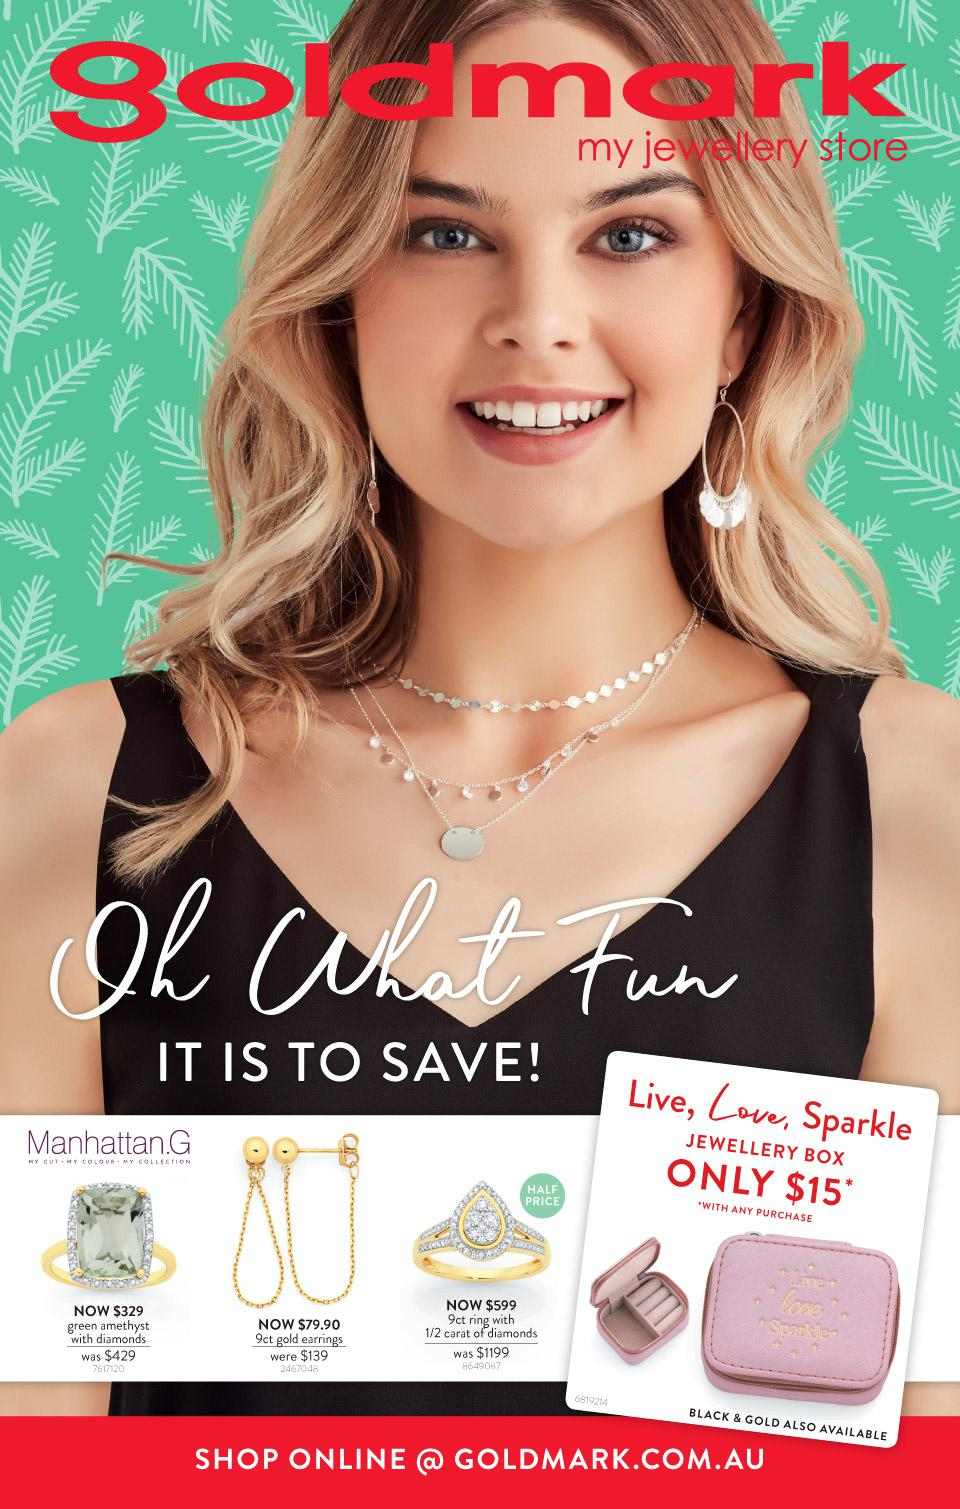 Goldmark Catalogue 4 November - 1 December 2019. Oh What Fun It Is to Save!